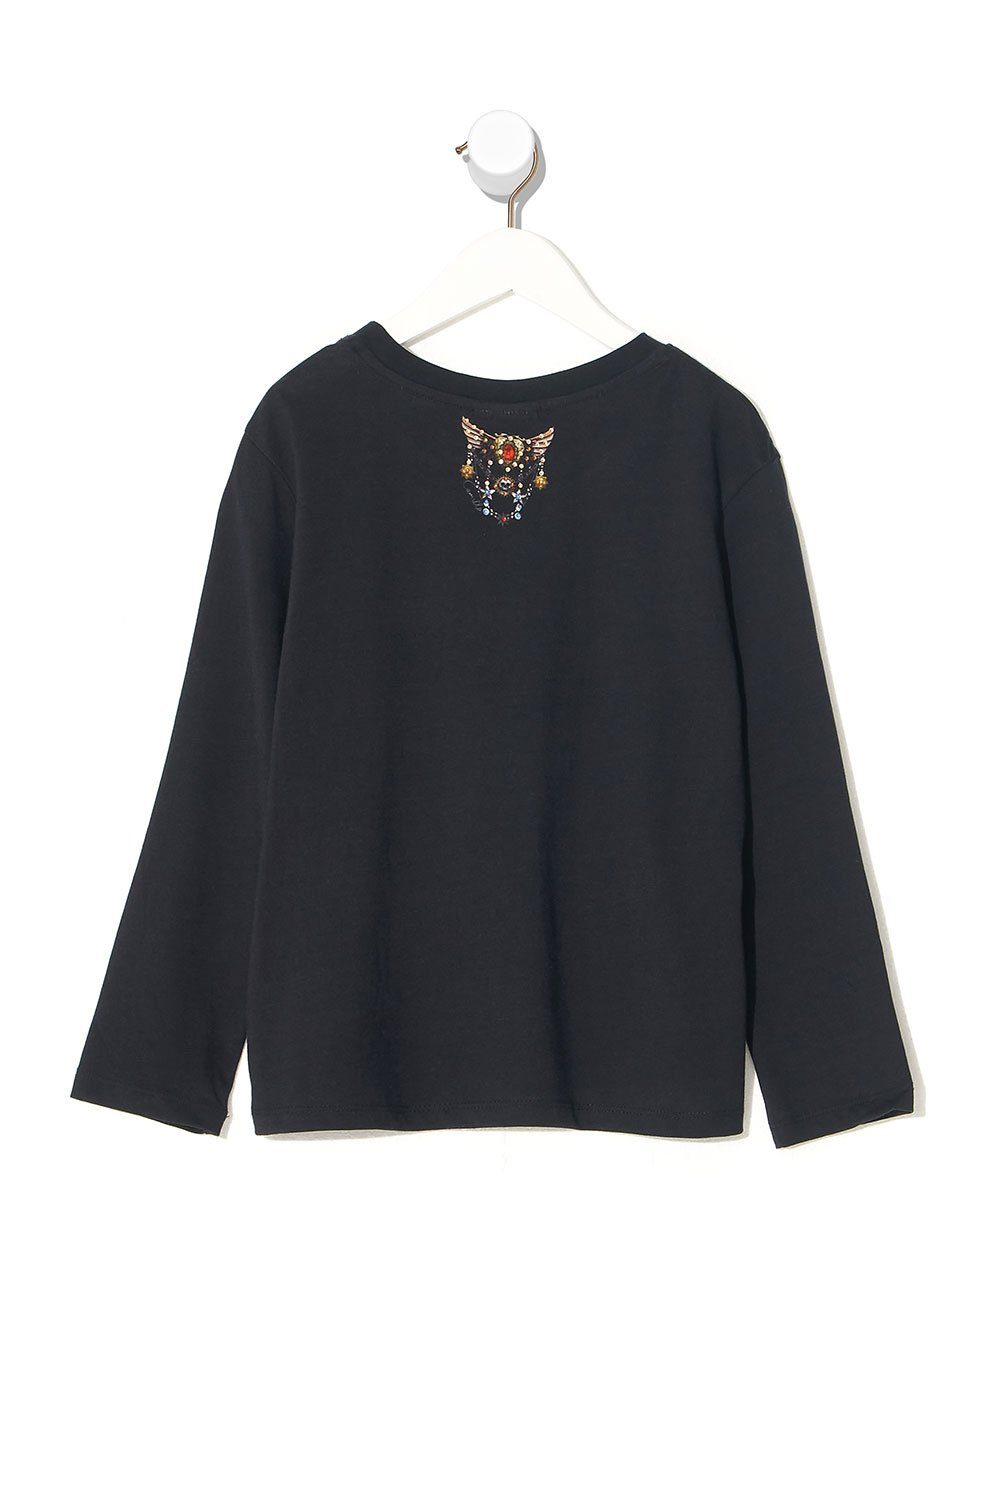 London Calling Kids Long Sleeve Top 12-14 GIRLS CLOTHING CAMILLA